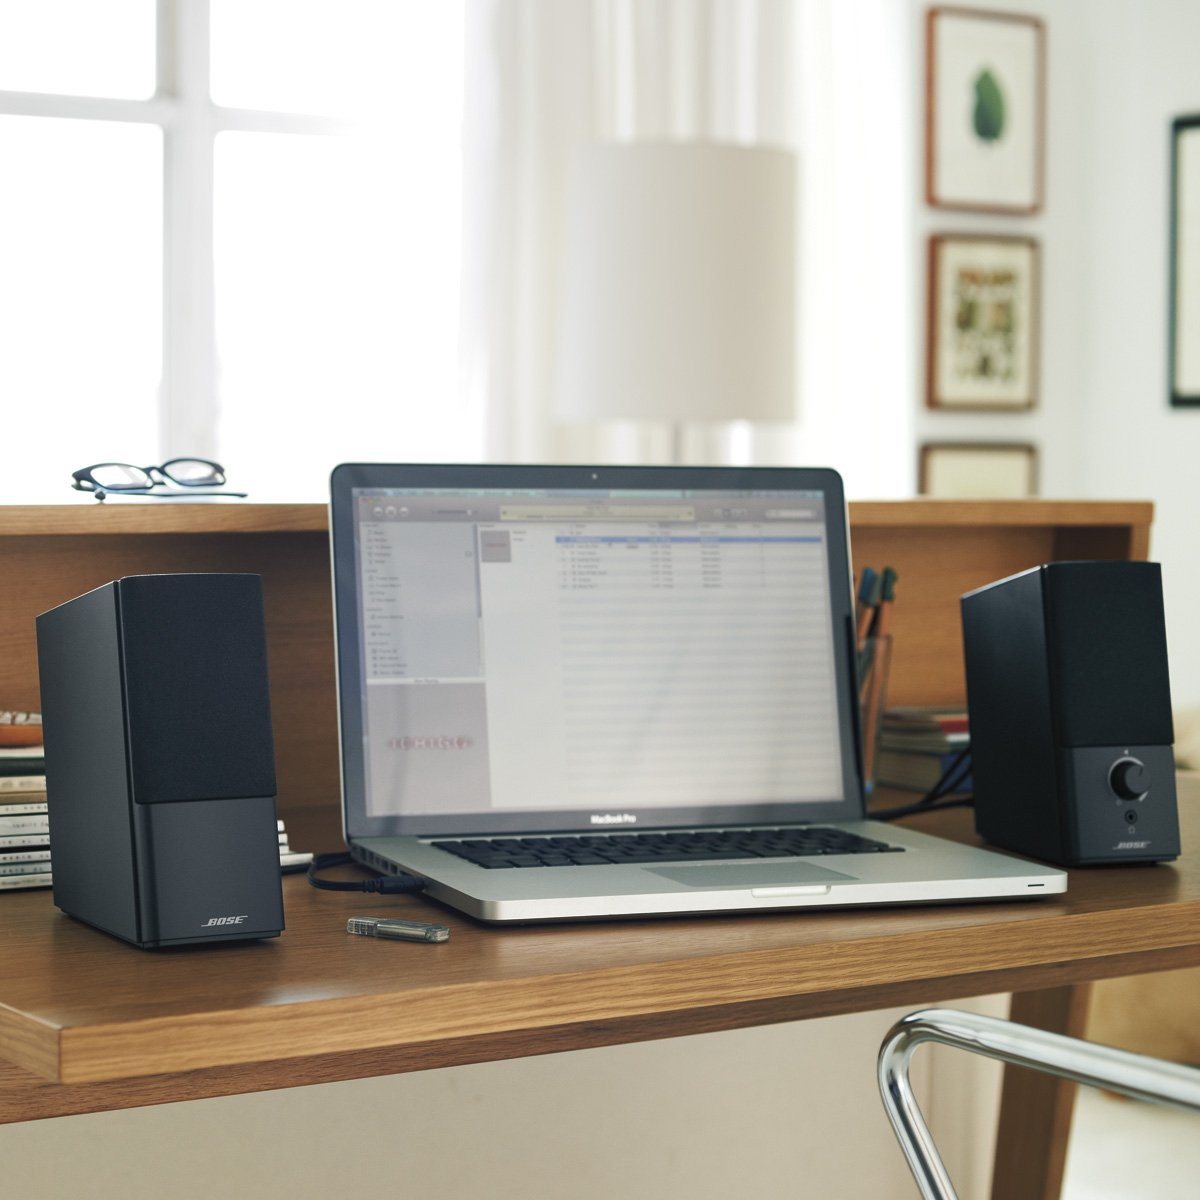 Bose Companion 2 Series III Multimedia Speakers - for PC (with 3.5mm AUX & PC input) by Bose (Image #6)